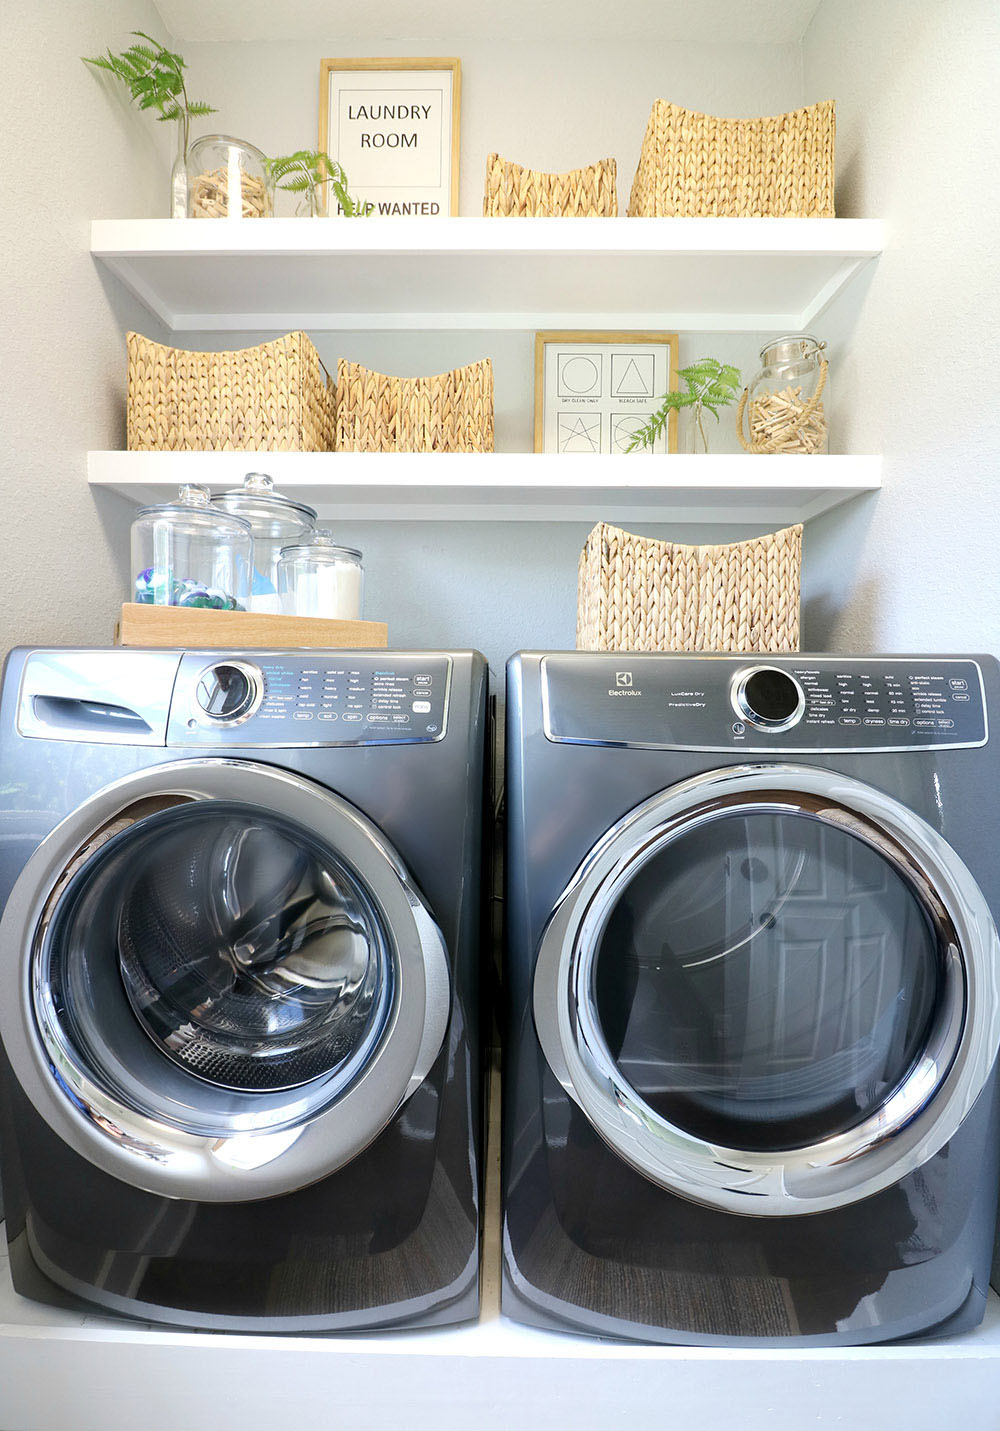 A laundry room with open shelving and the Electrolux Smart Boost Technology washer and dryer.